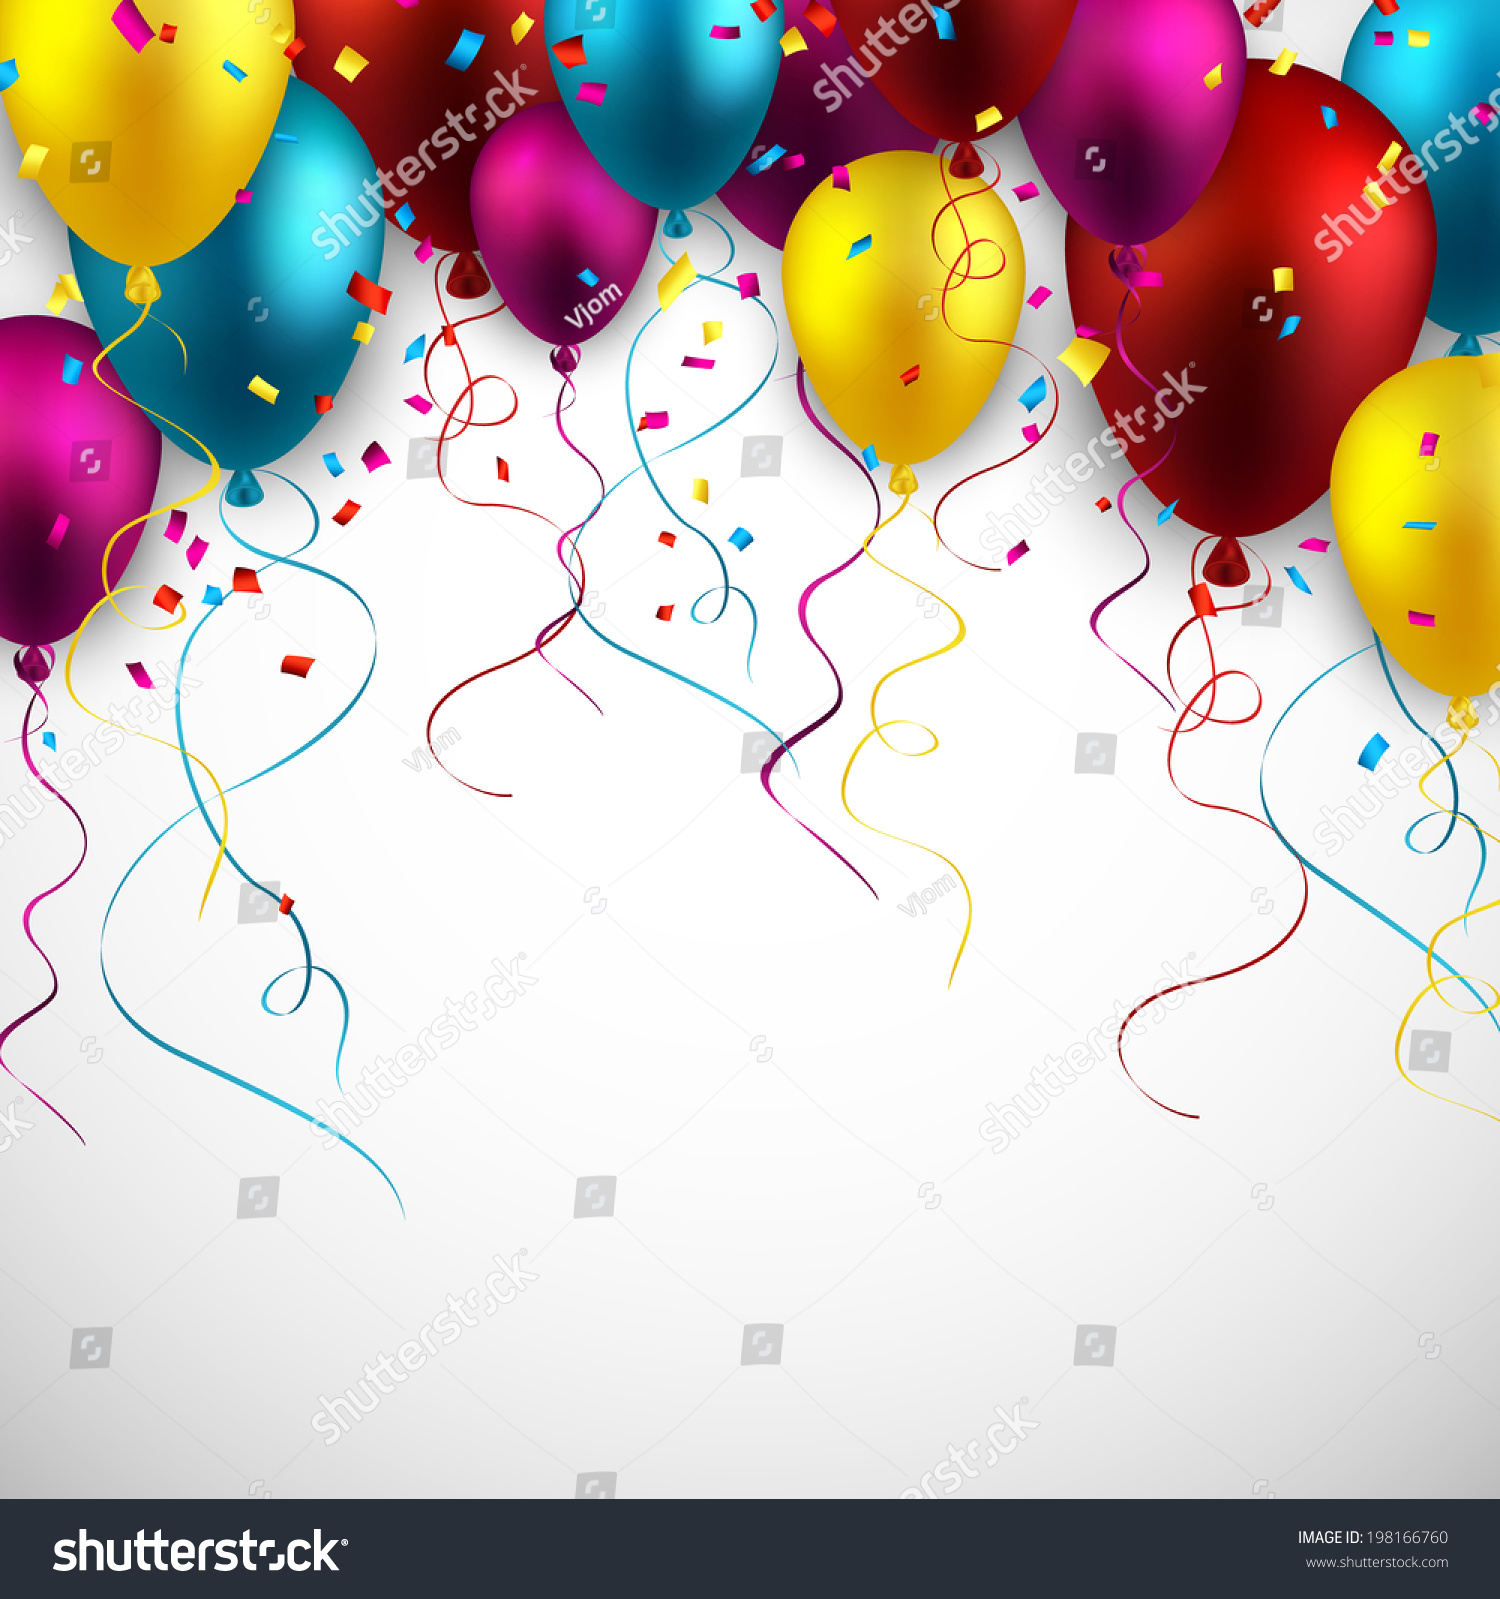 Celebration - Celebration Colorful Background With Balloons And Confetti Vector Illustration